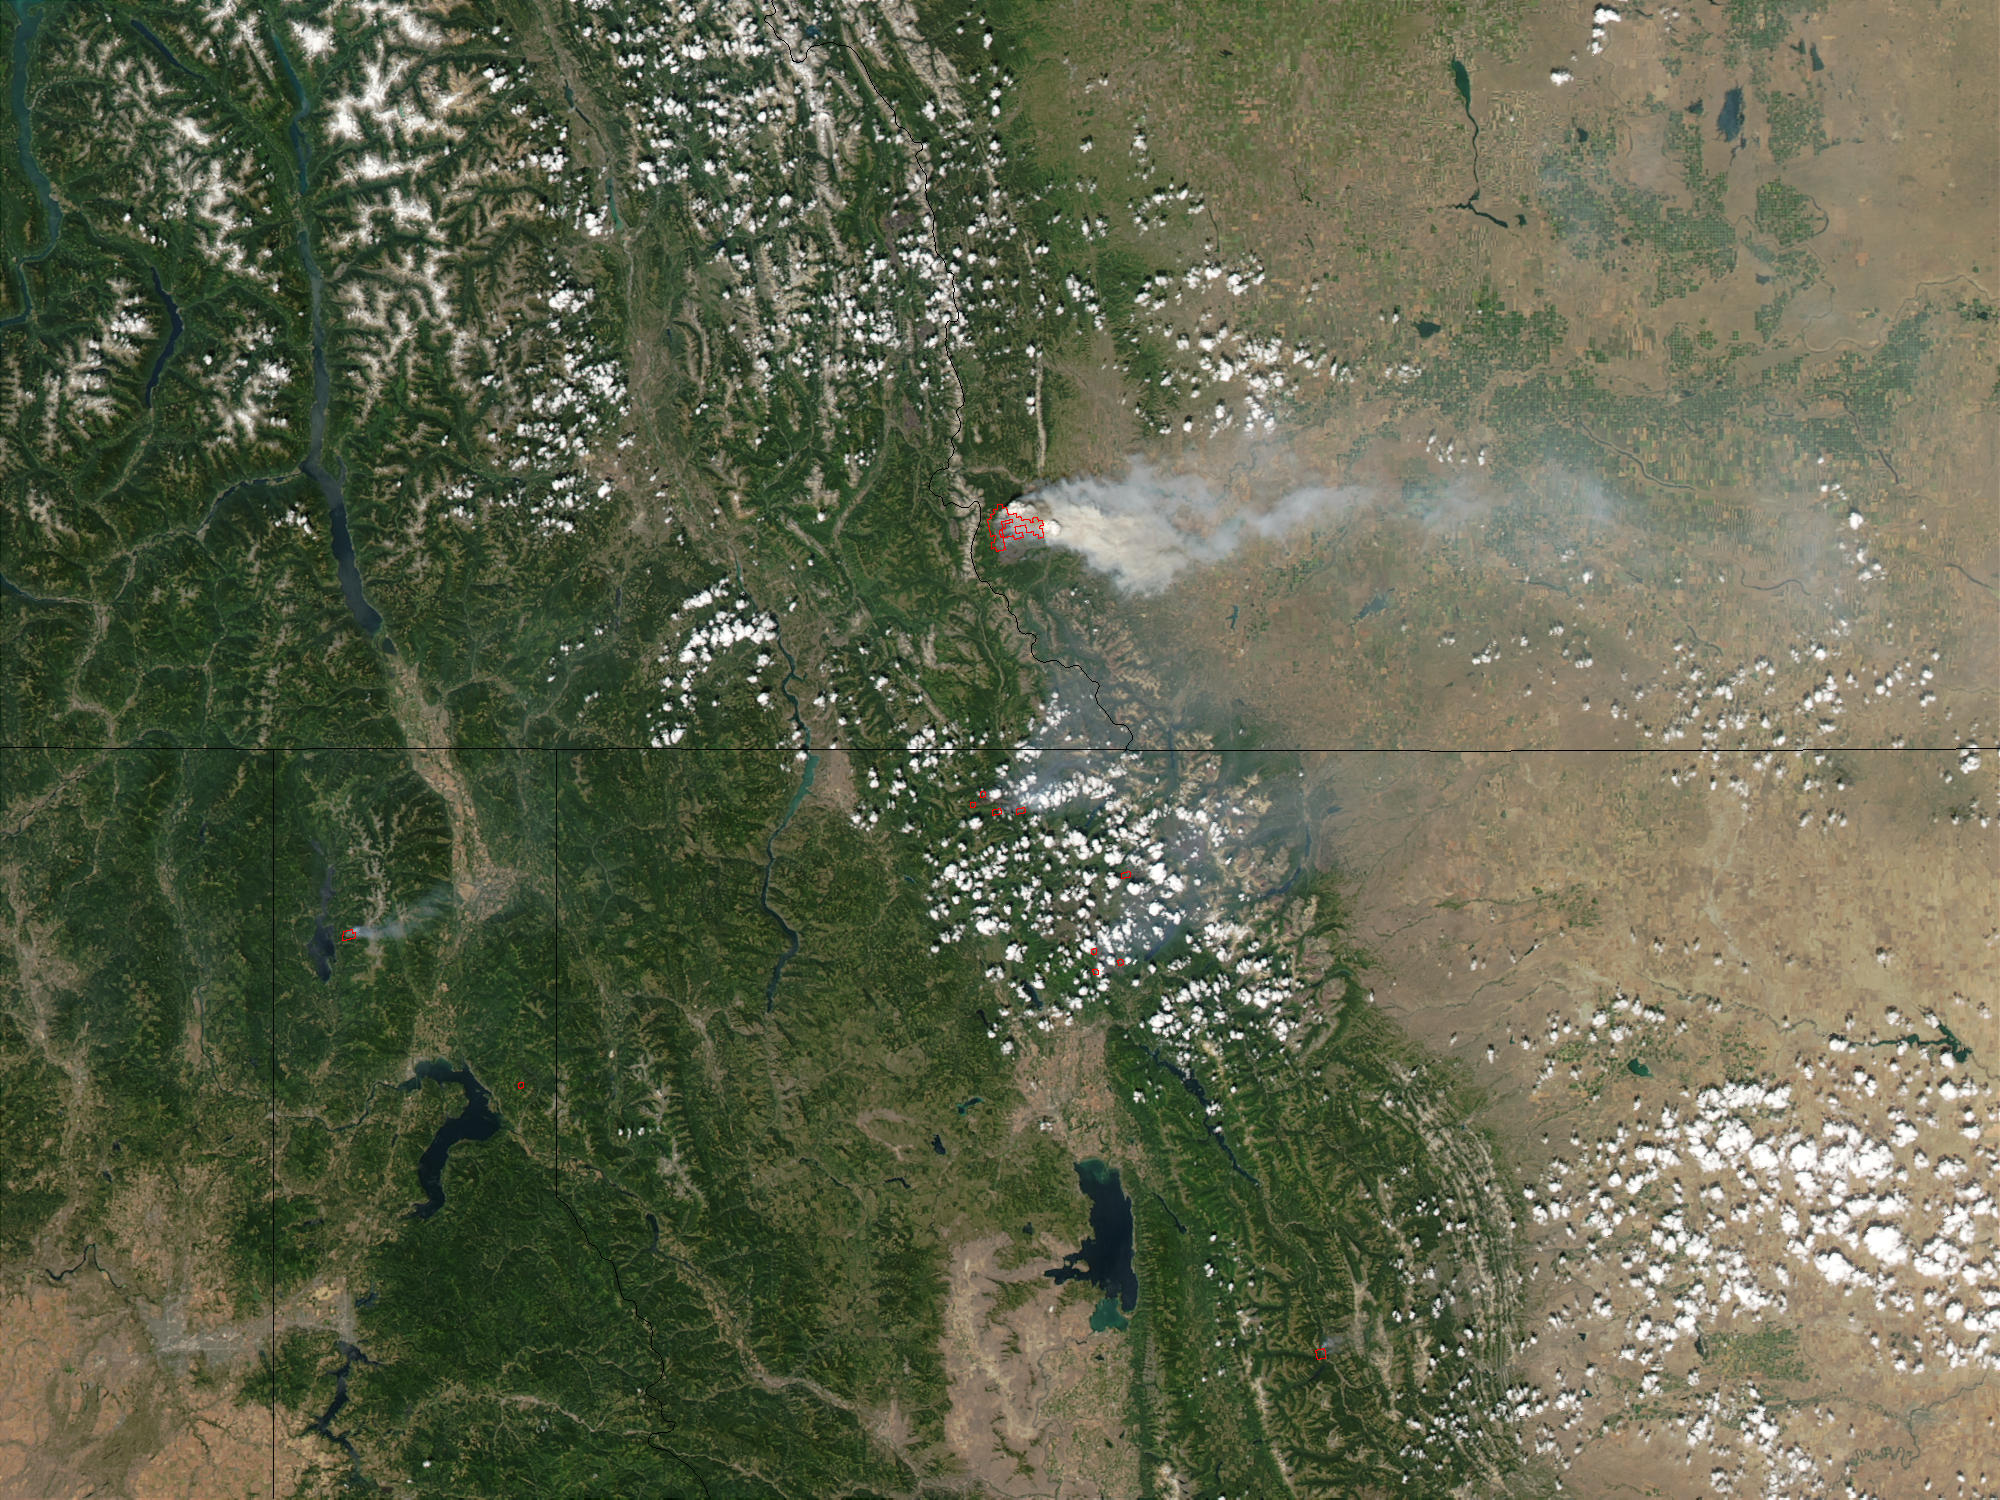 Fires in Montana and Alberta: Natural Hazards